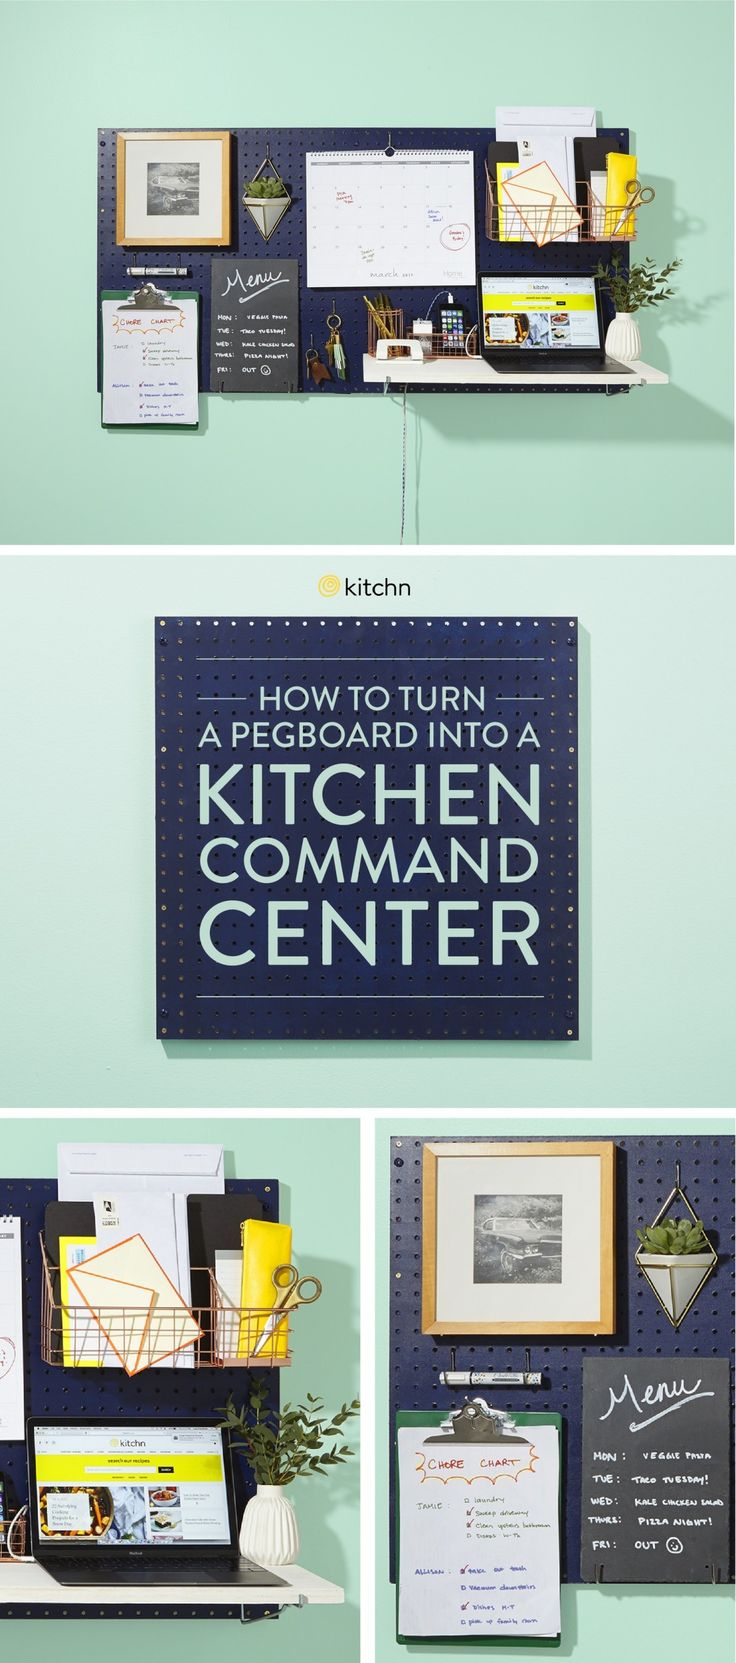 The different kitchen layouts bandidusa home design preferance - Almost Every New Construction Suburban Kitchen Has Space For A Command Center Or Mini